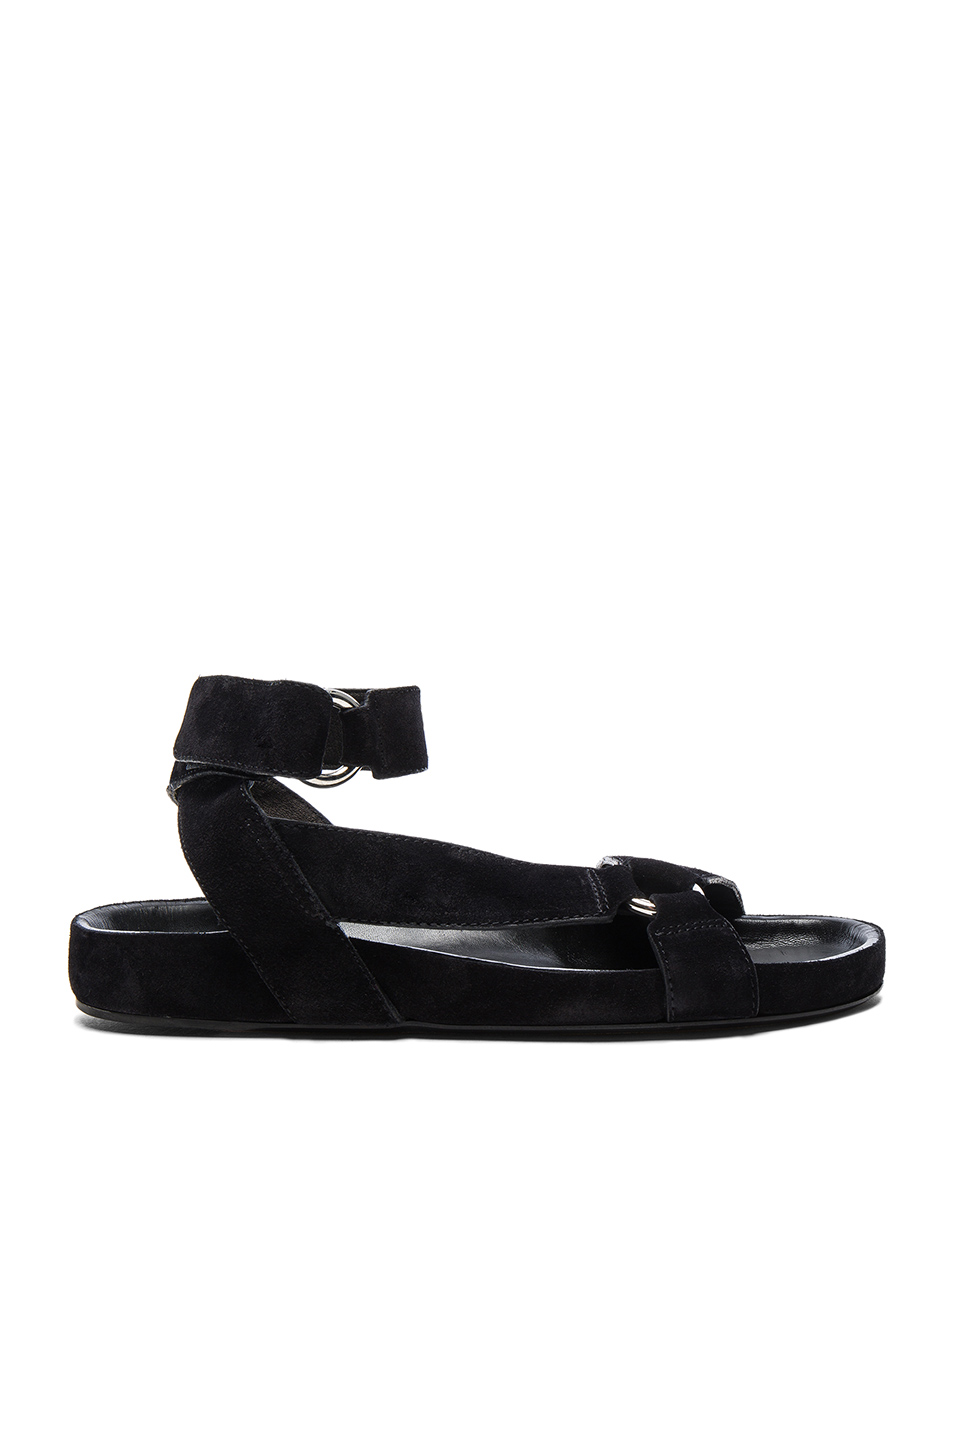 Isabel Marant Etoile Suede Loatis Easy Chic Sandals in Black